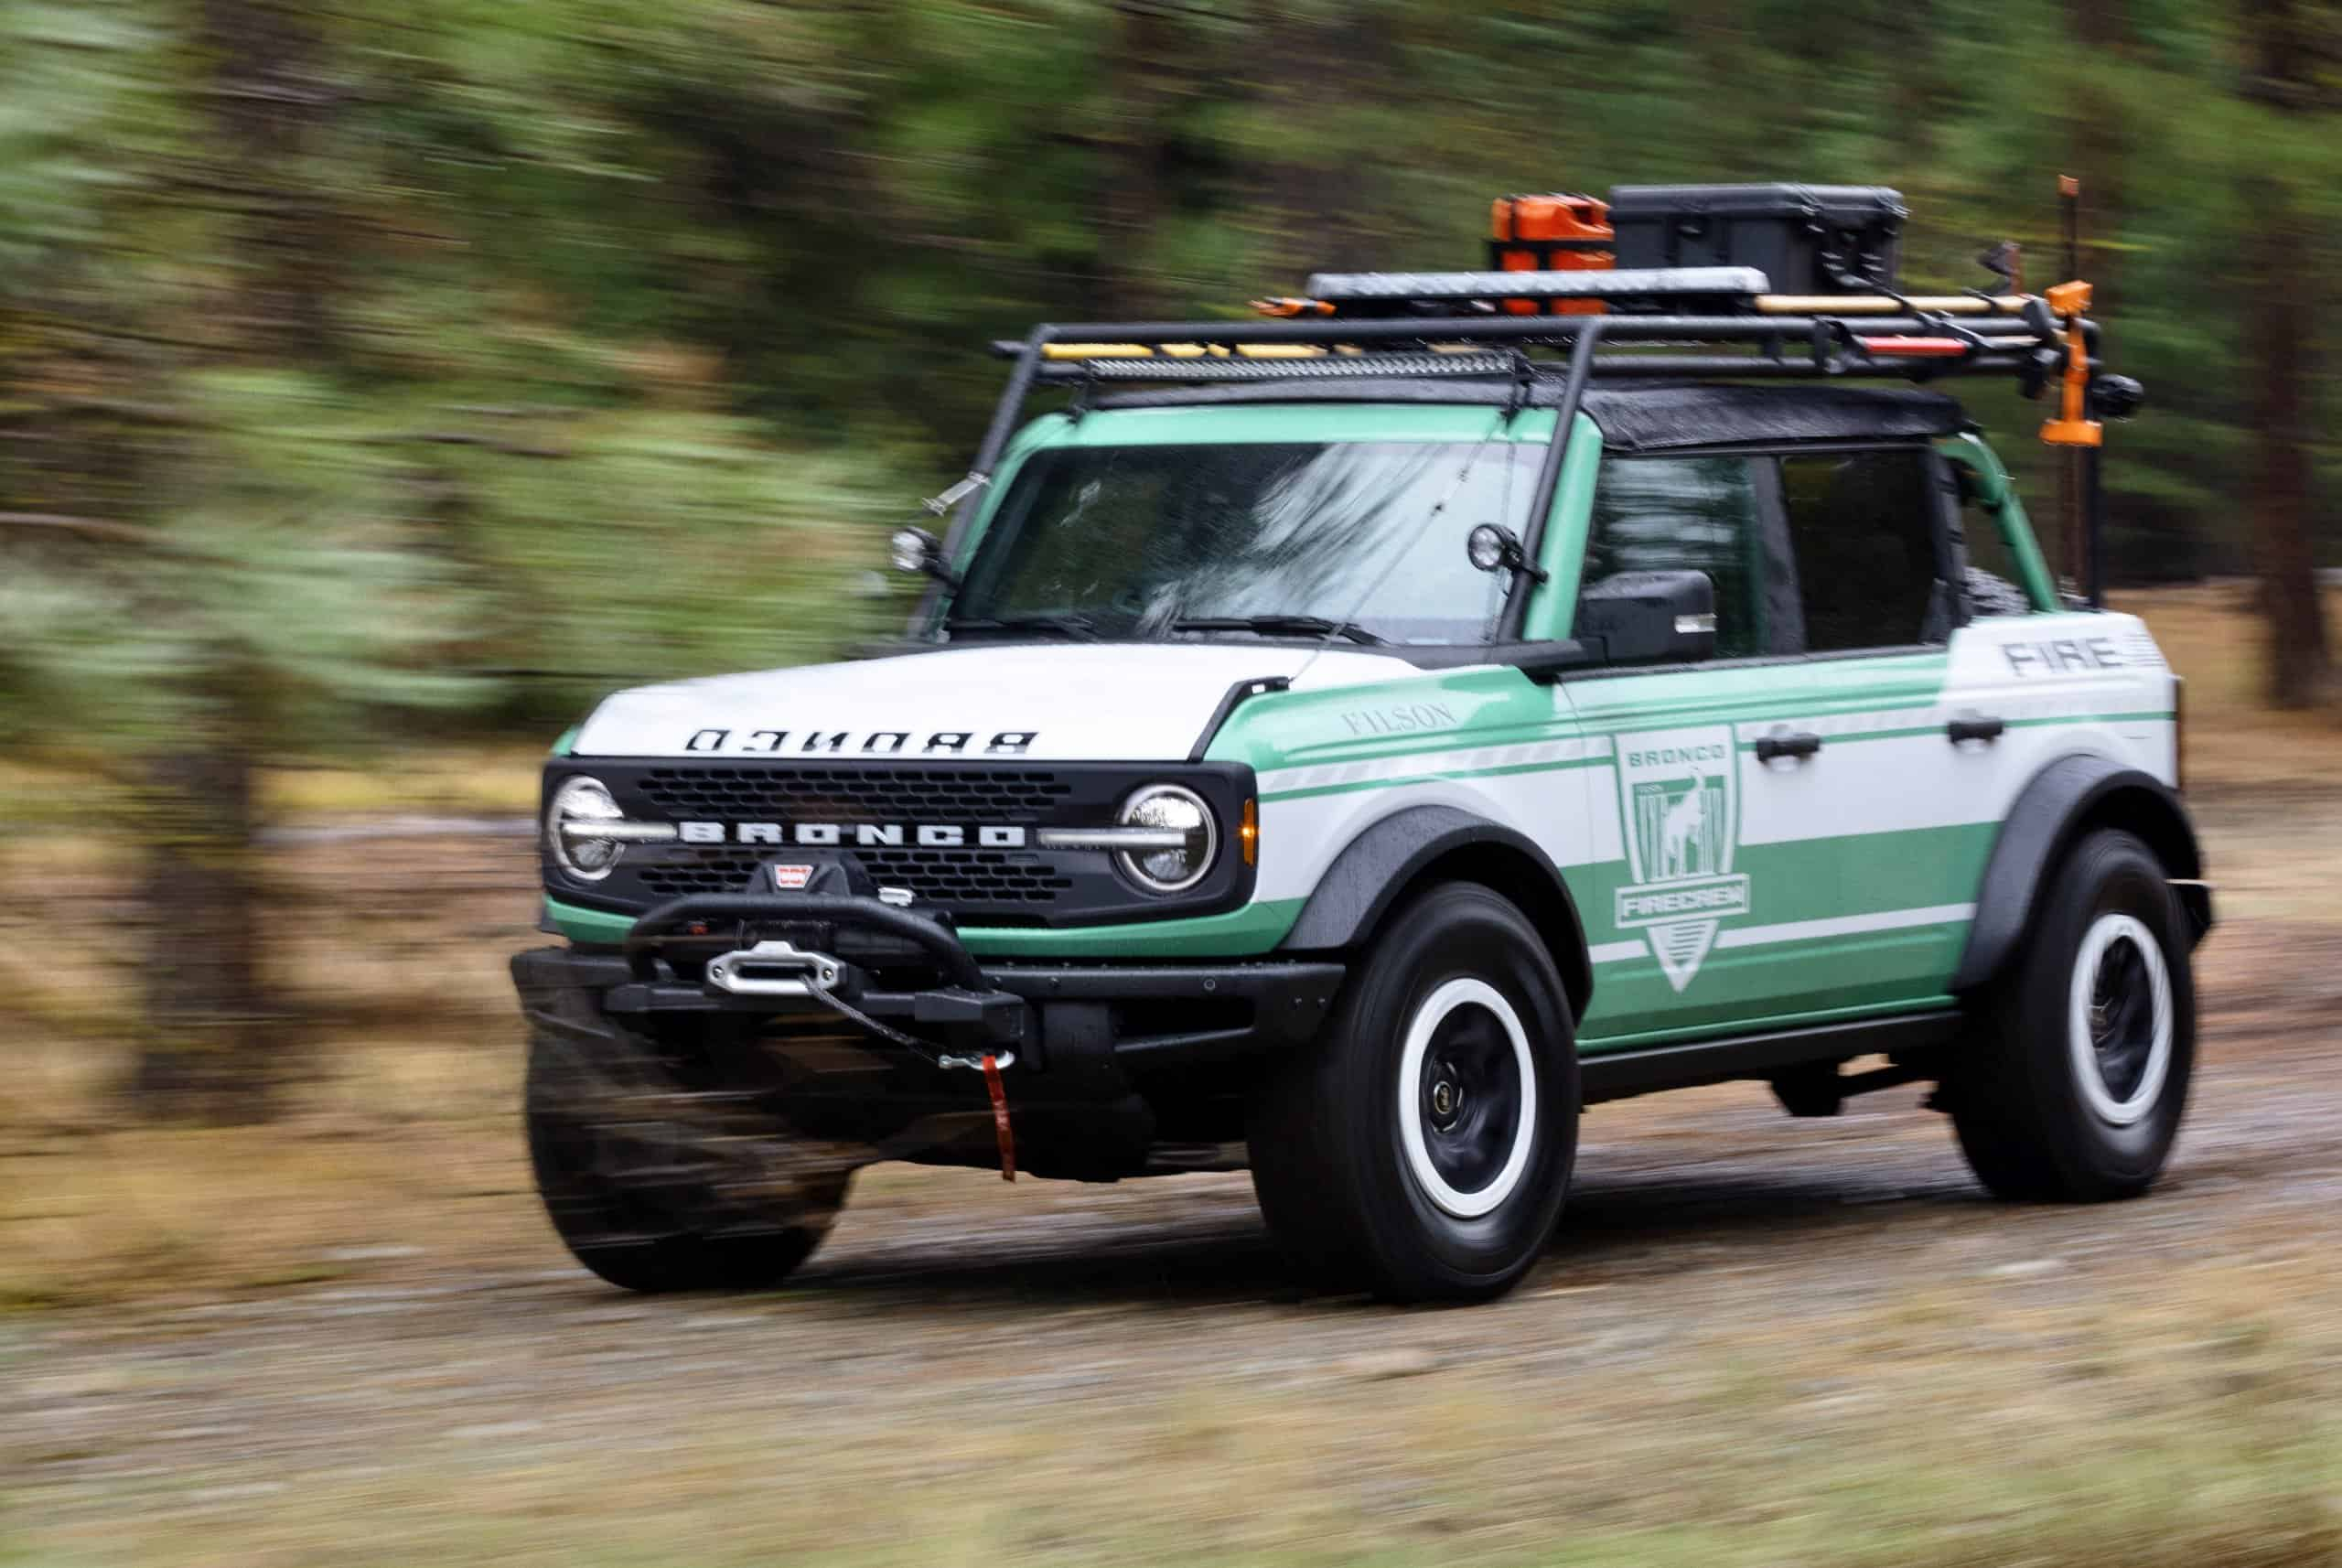 Ford Bronco Wildland Fire Rig Revealed To Support The Forest Service